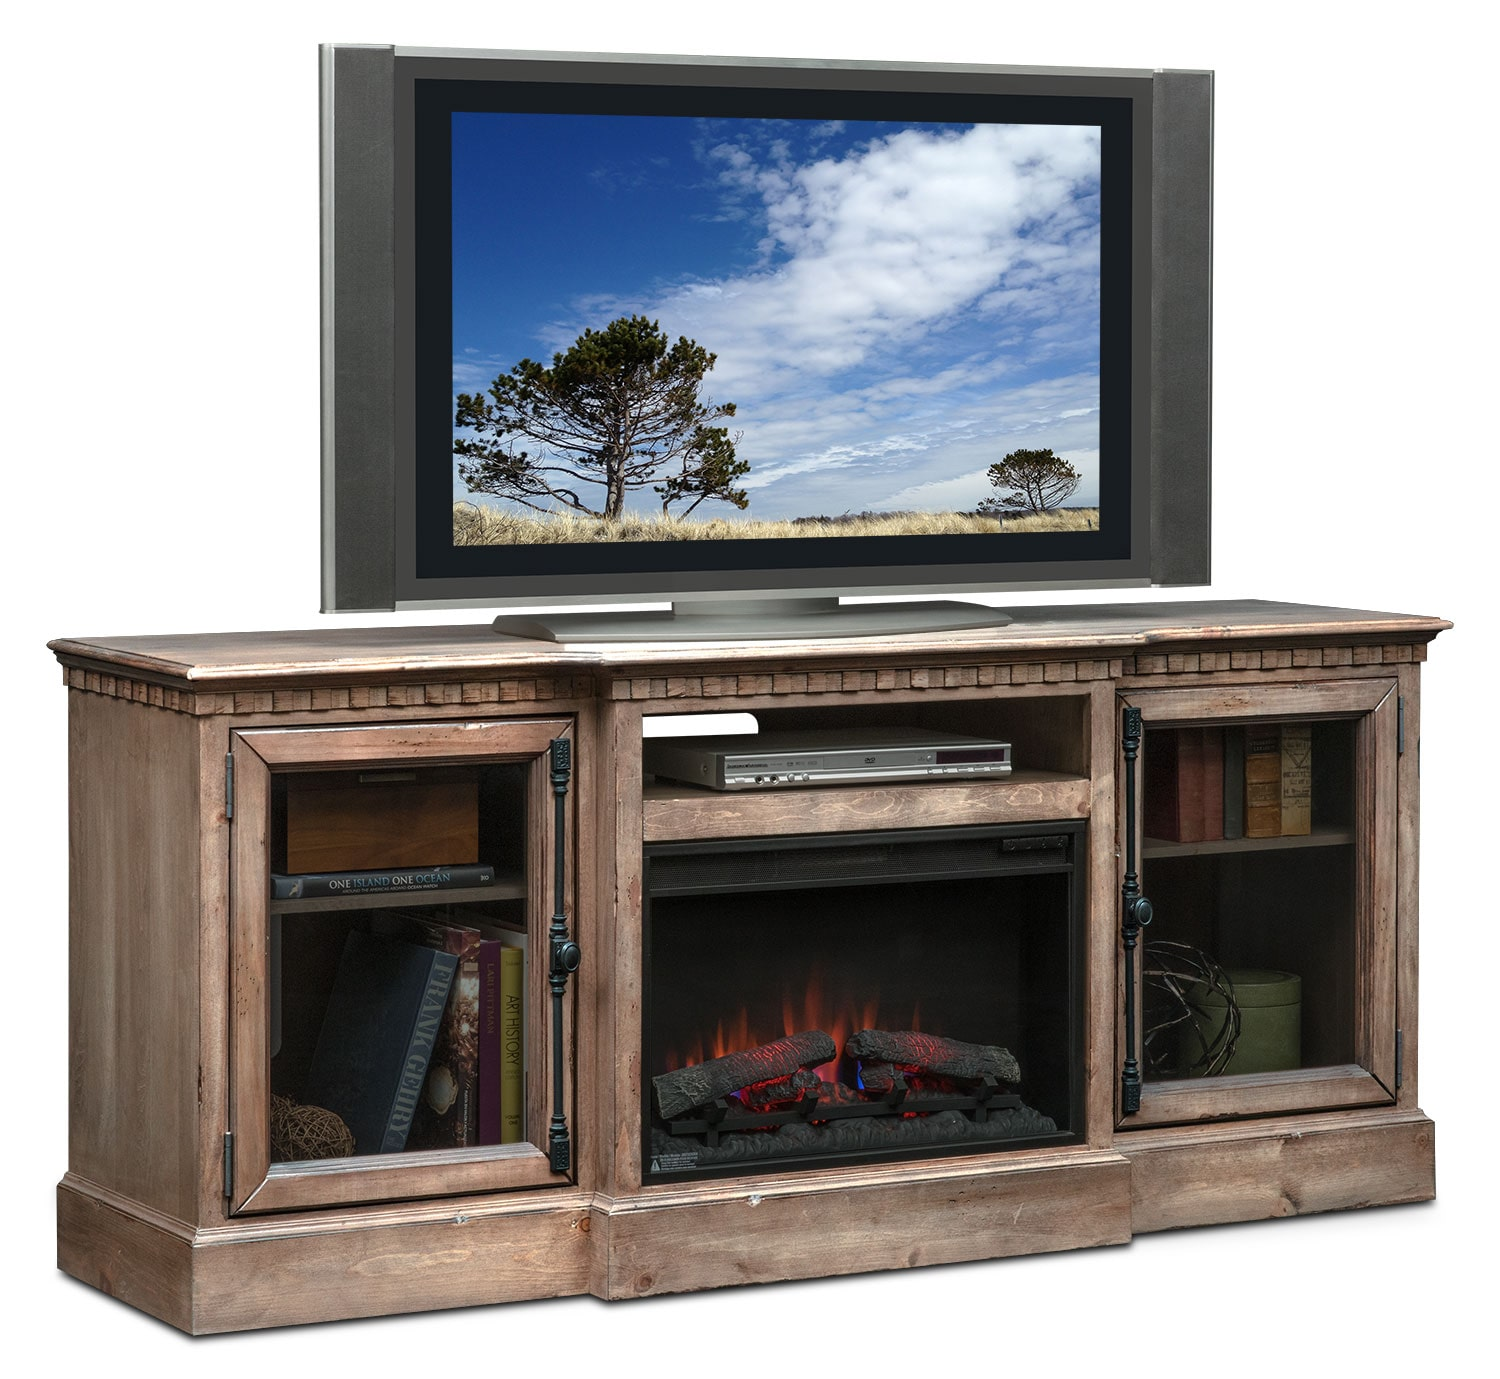 "Claridge 74"" Traditional Fireplace Media Stand - Gray"